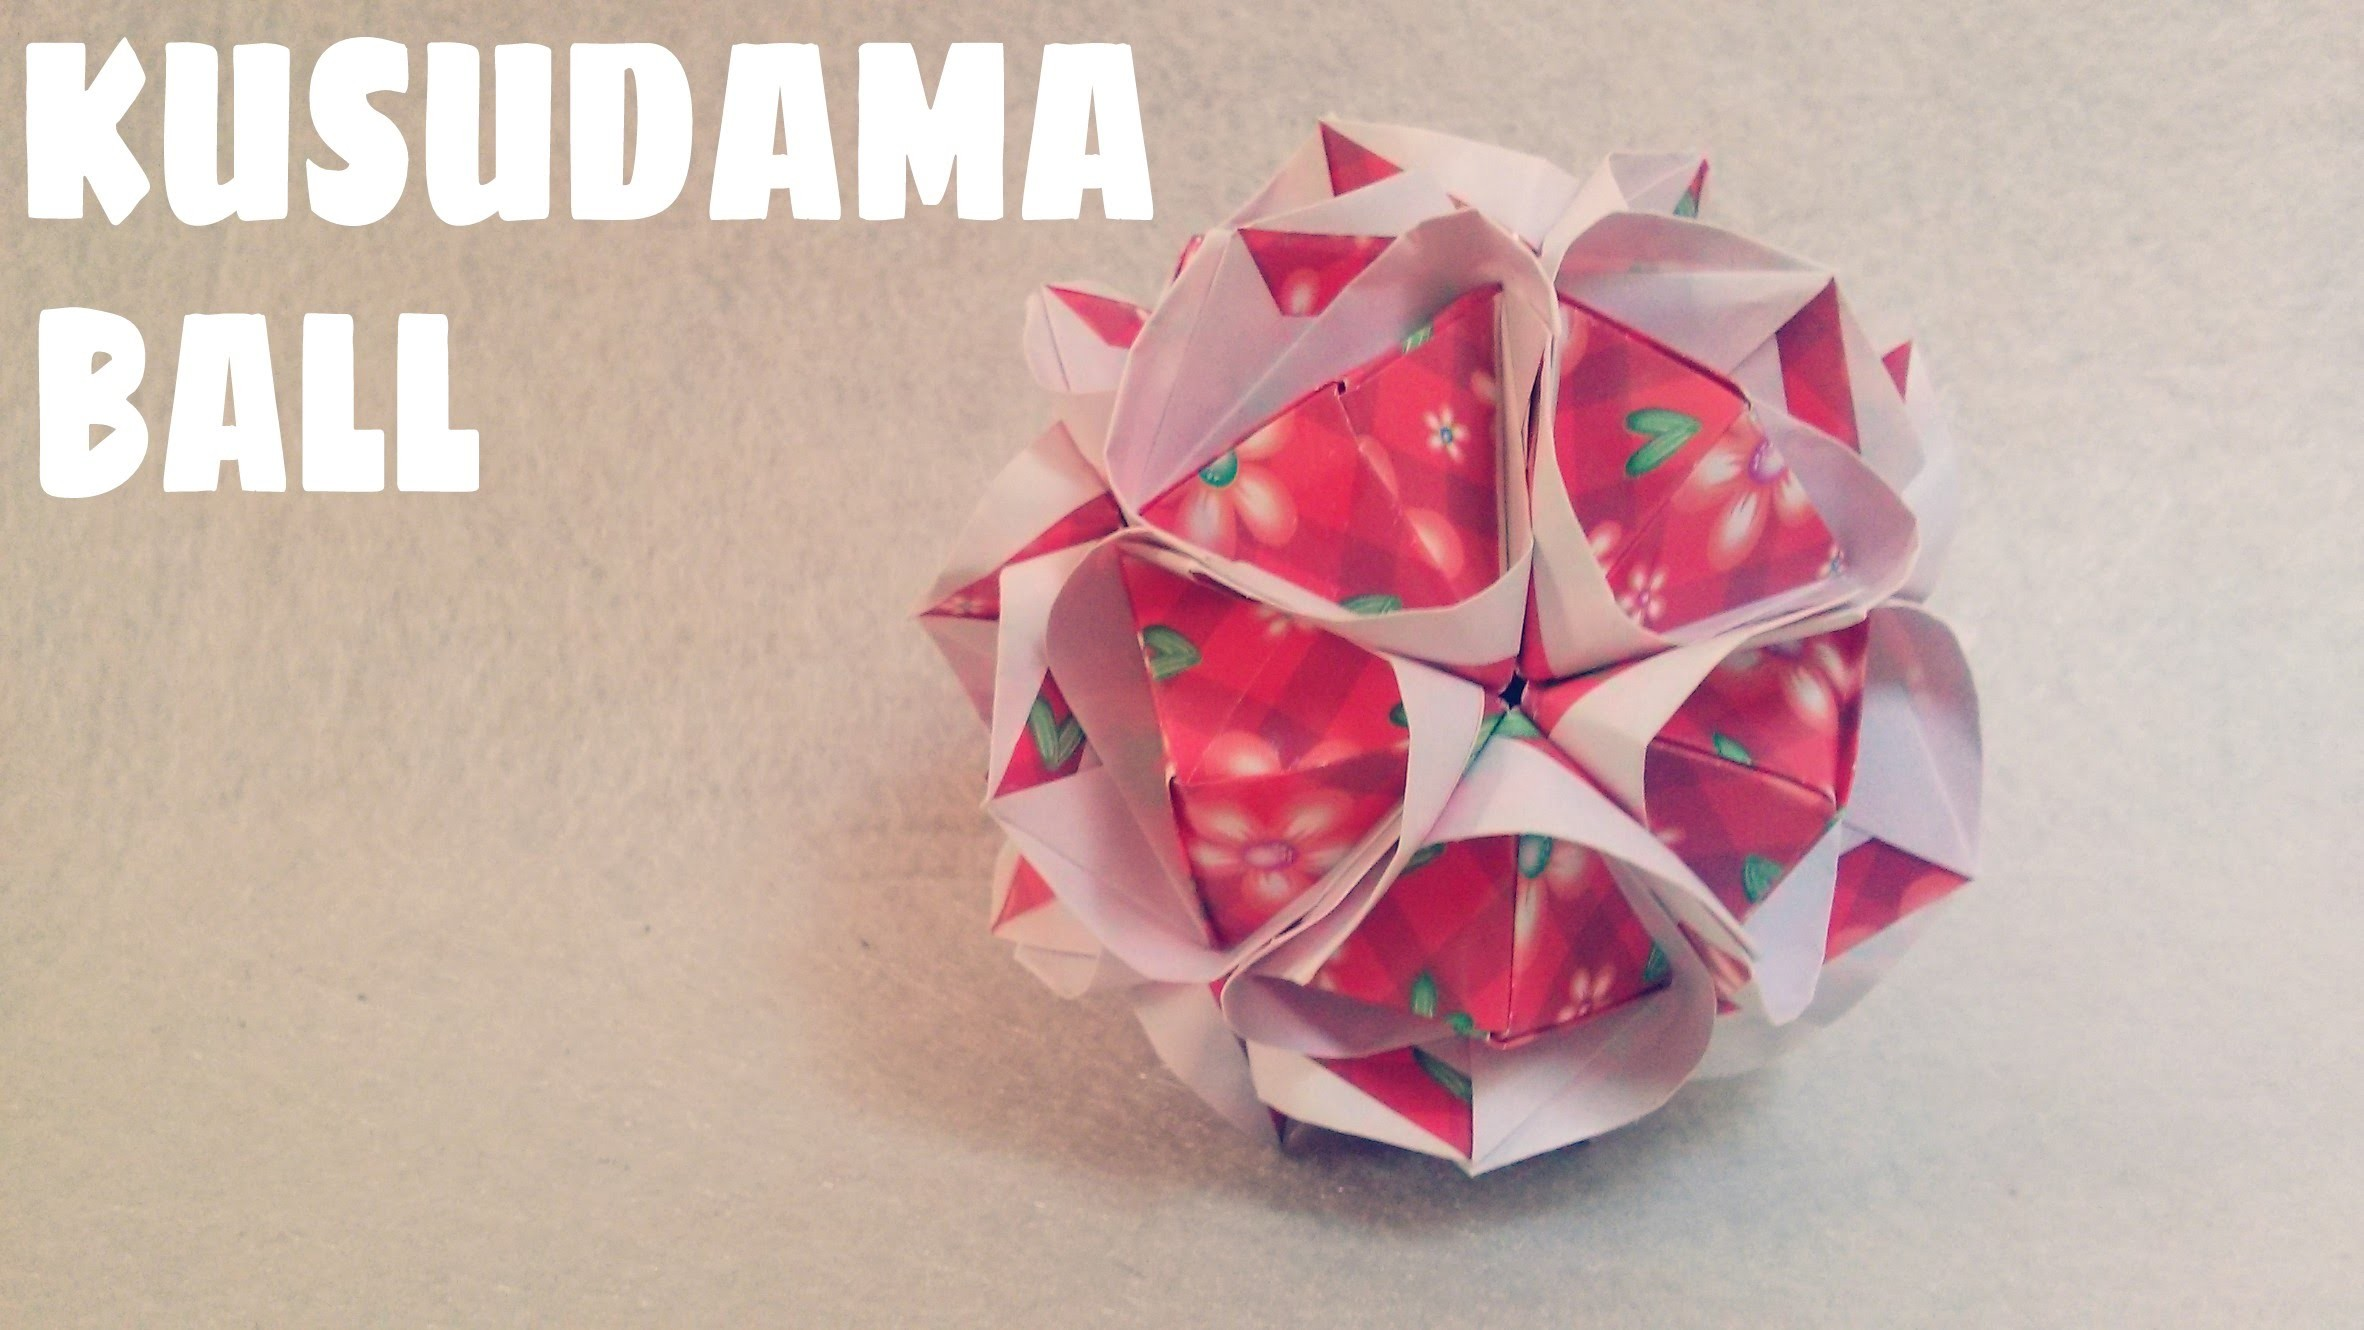 DIY - Origami Ball Instructions - Kusudama Ball